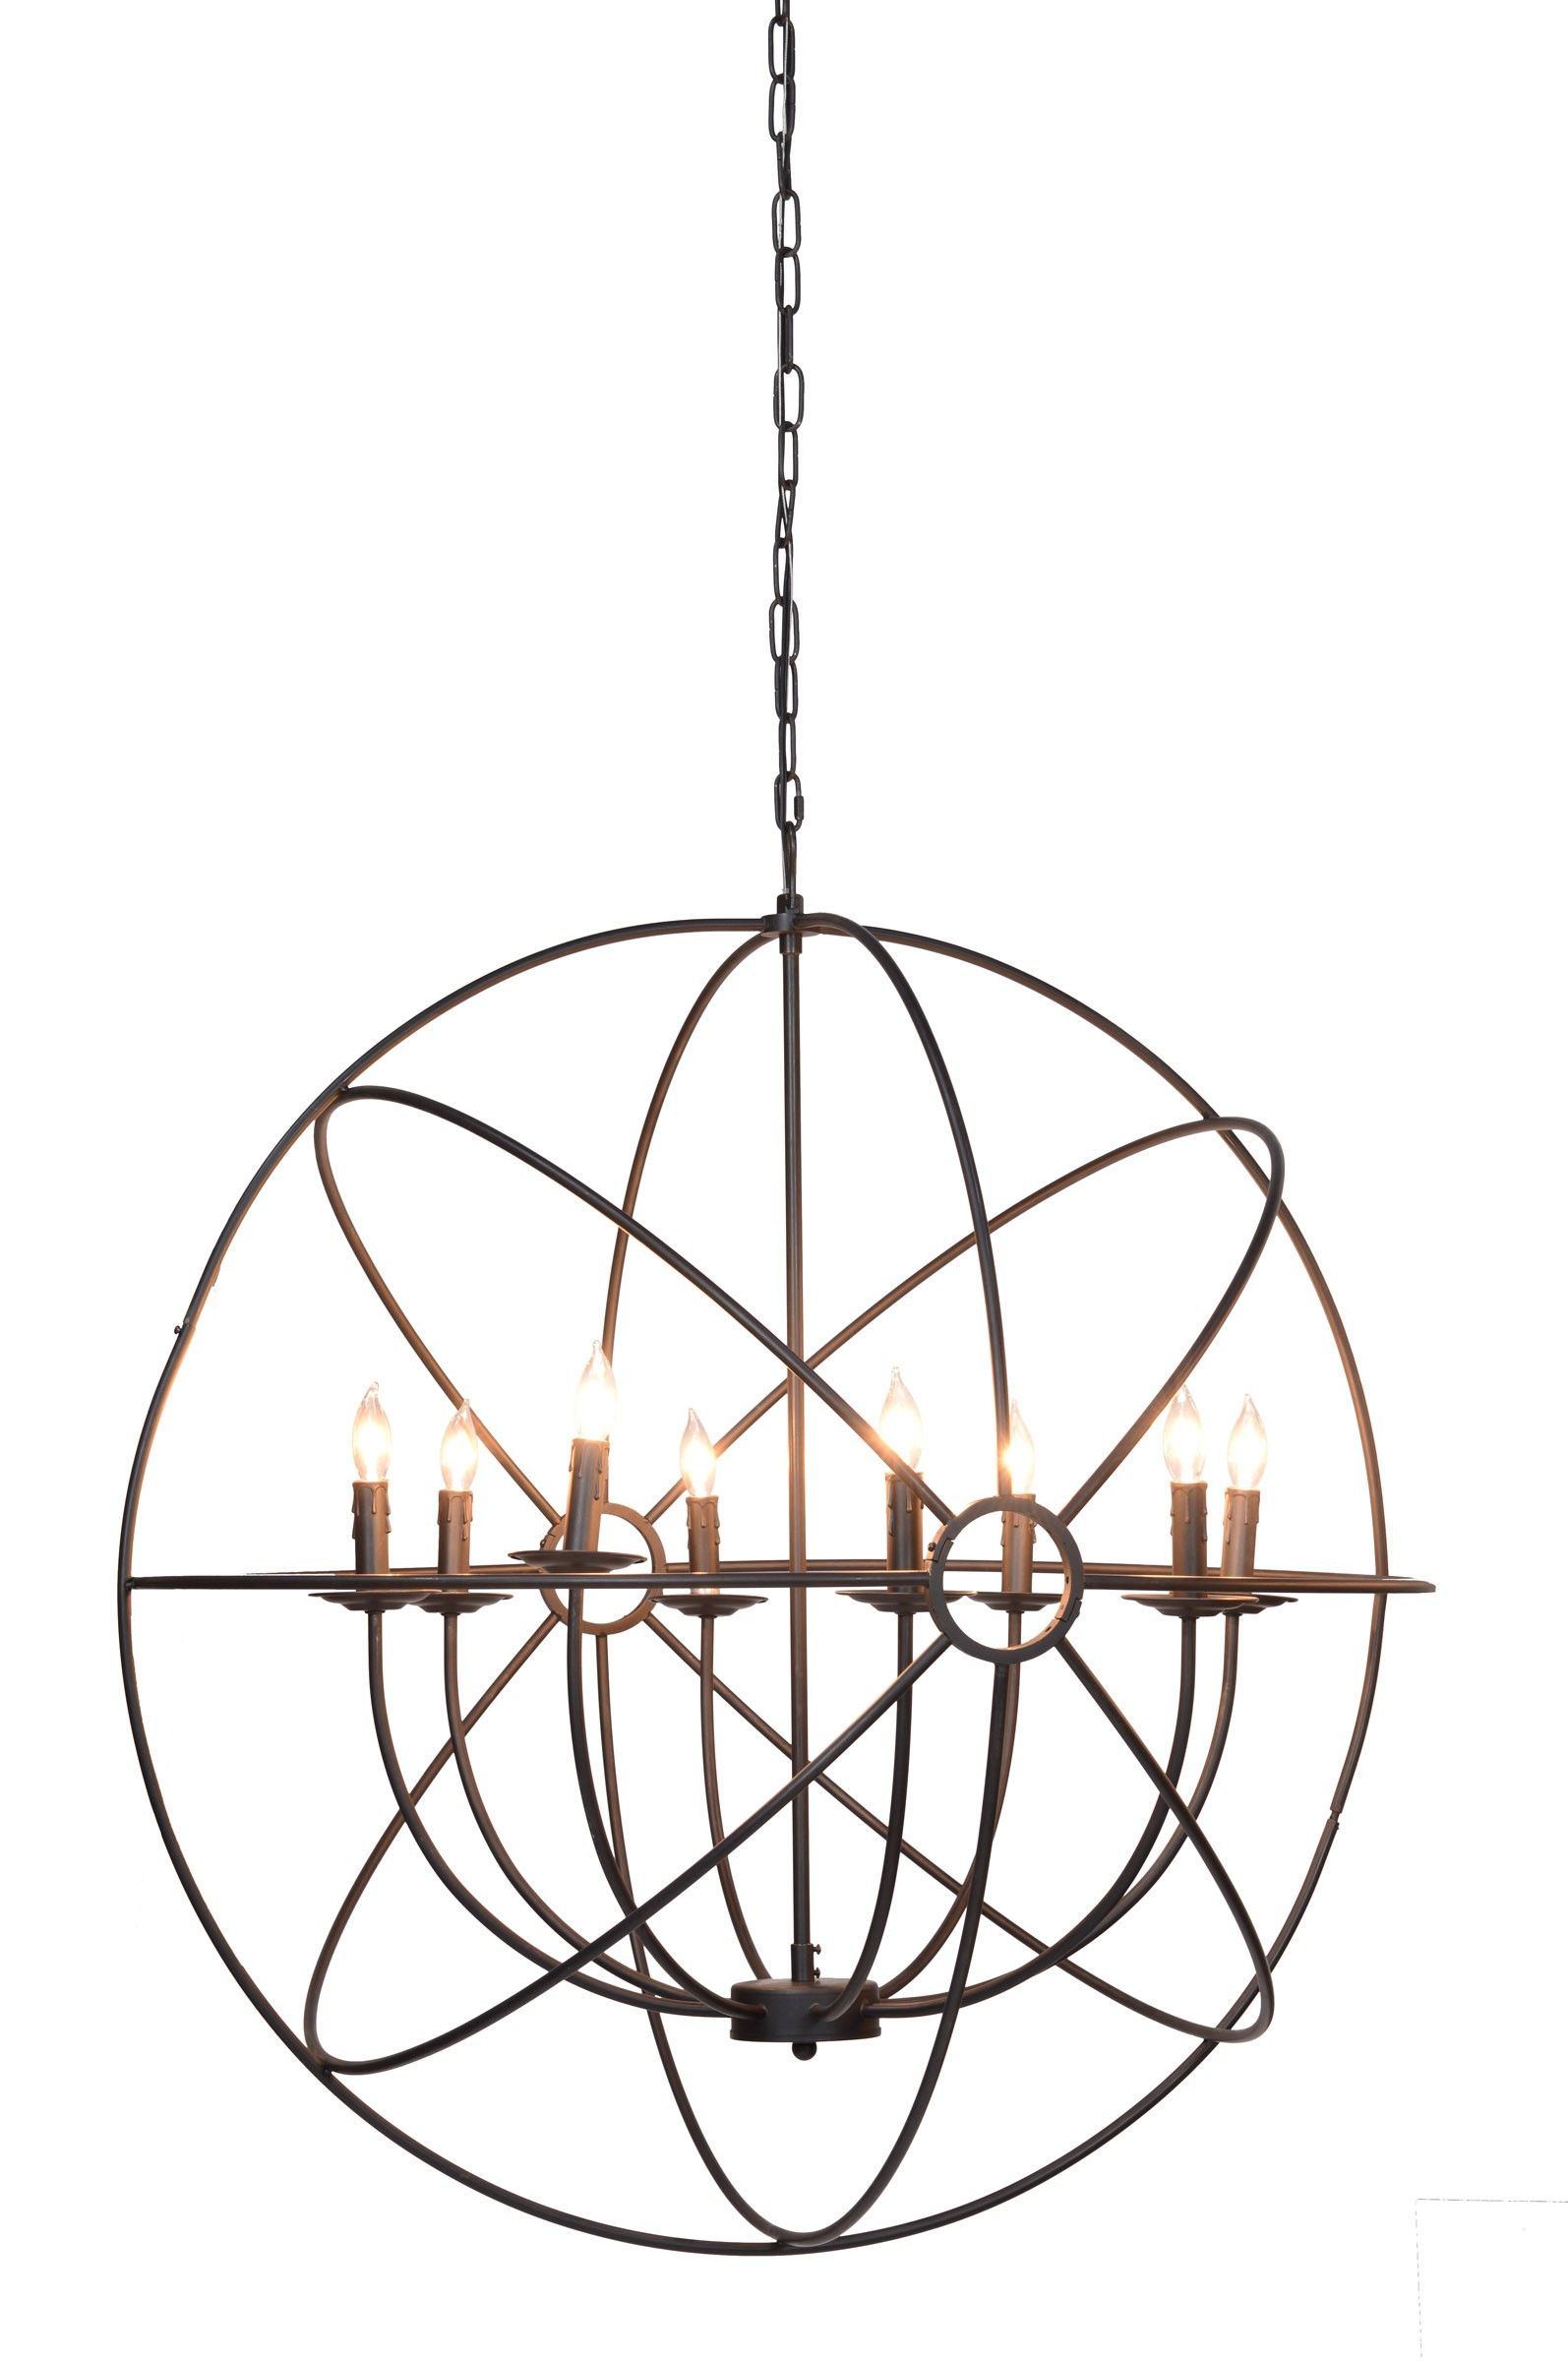 Derince iron chandelier this spectacular iron chandelier is derince iron chandelier this spectacular iron chandelier is inspired by ancient astronomy armillary spheres arubaitofo Image collections